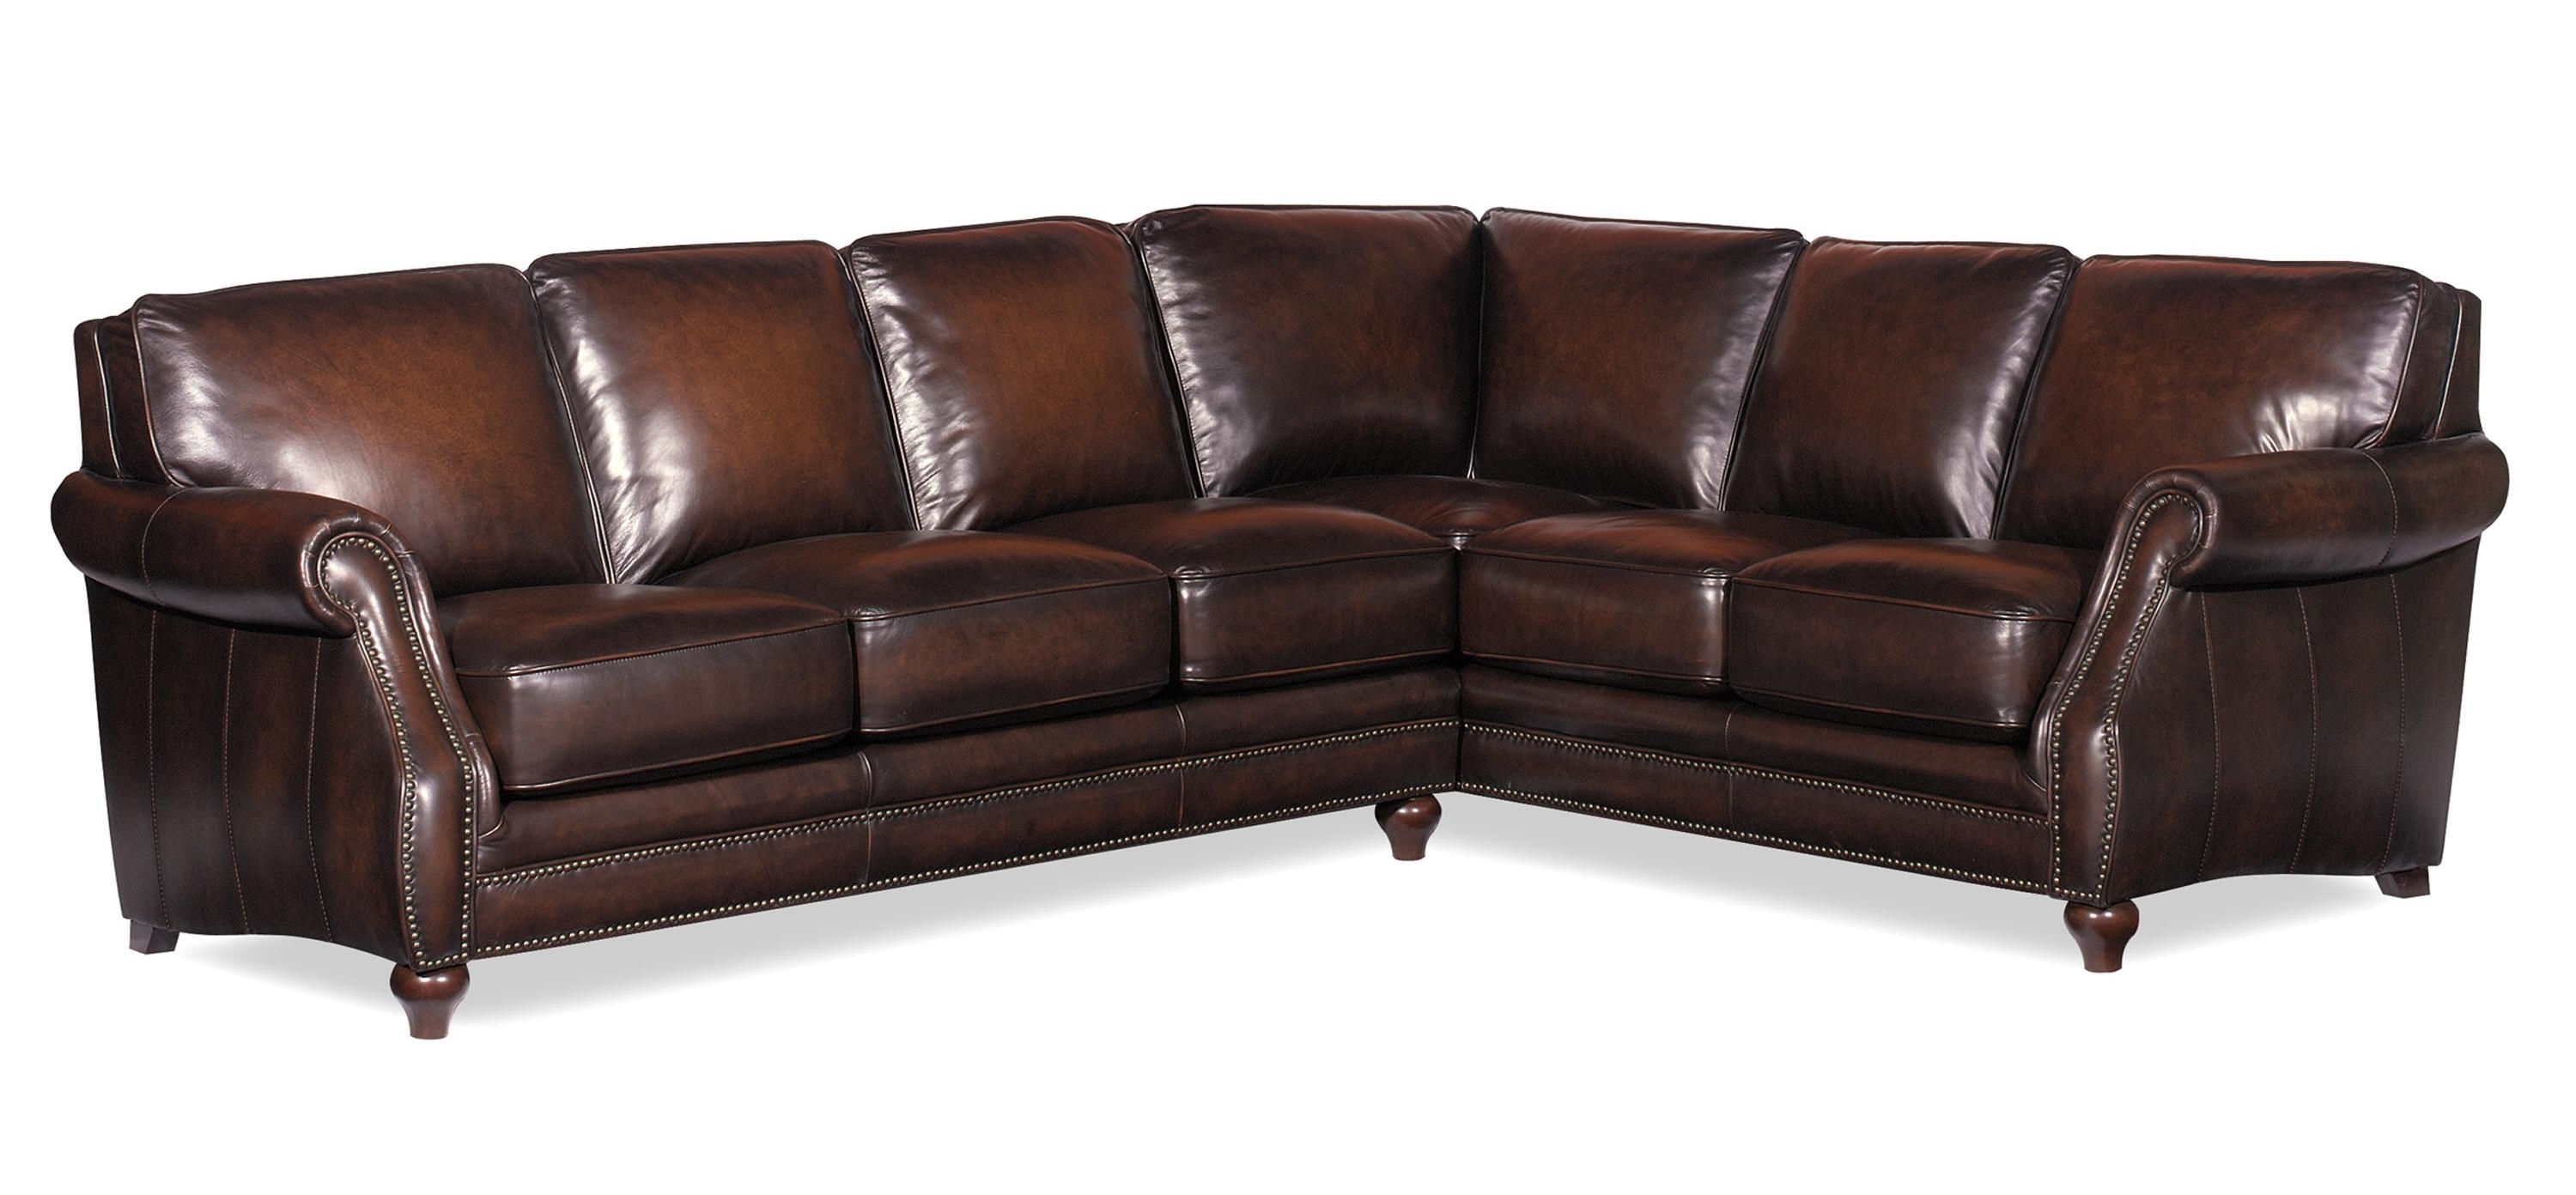 L121500 Two Piece Sectional Sofahickorycraft//johnny Janosik With Trendy Johnny Janosik Sectional Sofas (View 5 of 15)